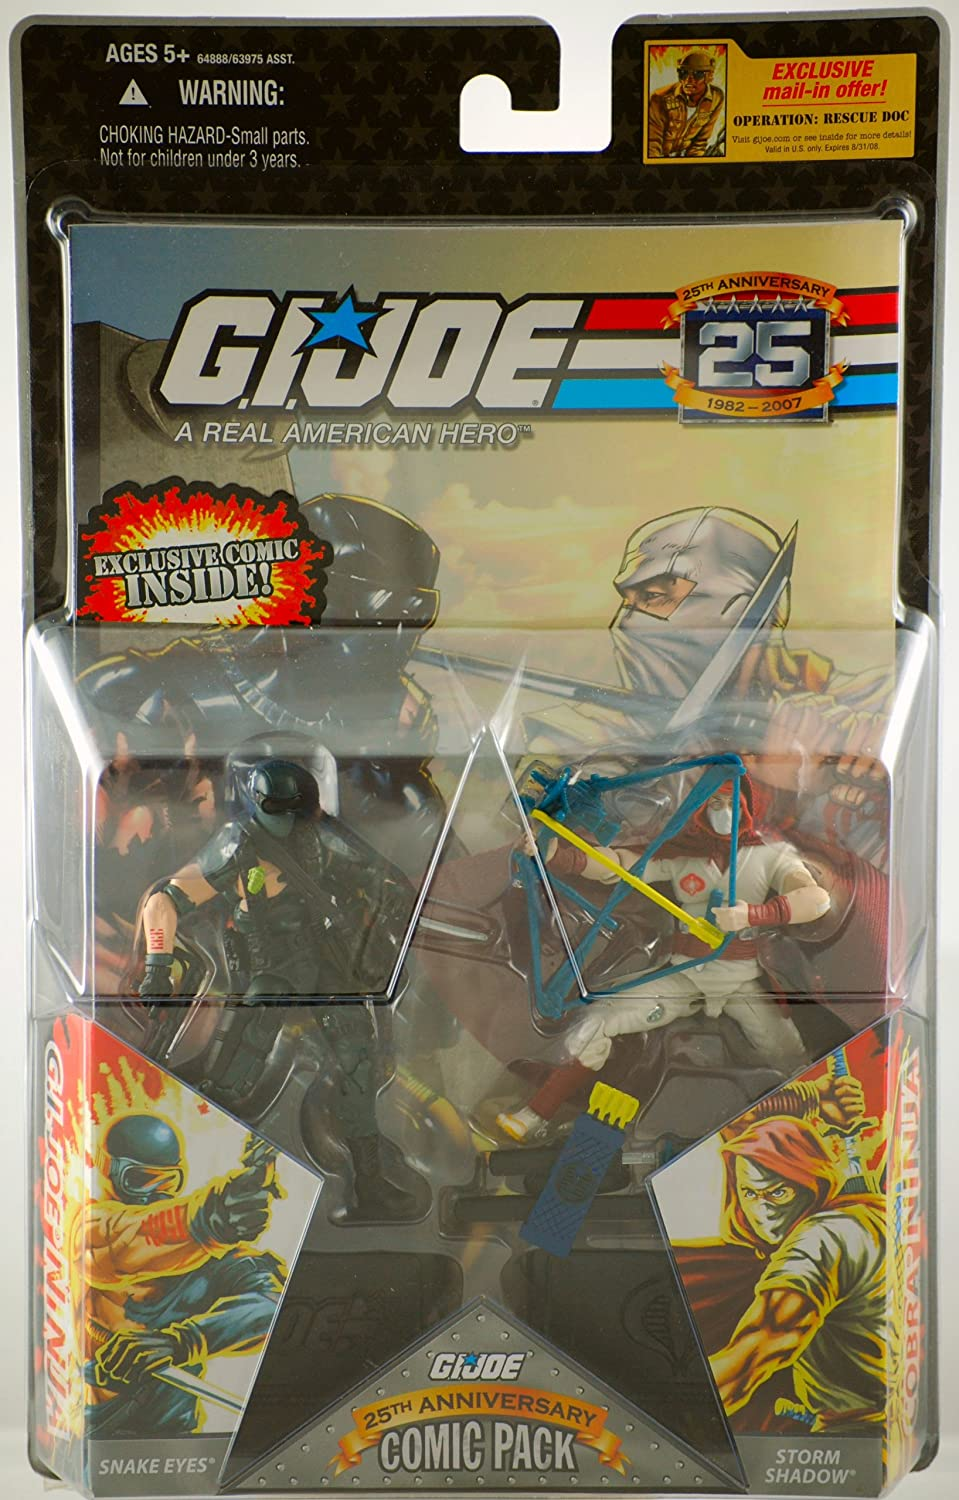 G.I. Joe  2007  Hasbro  25th Anniversary  Comic Pack  Snake Eyes & Storm Shadow Action Figures   Silence Between Borders   1  Exclusive Comic  New  Limited Edition  Collectible